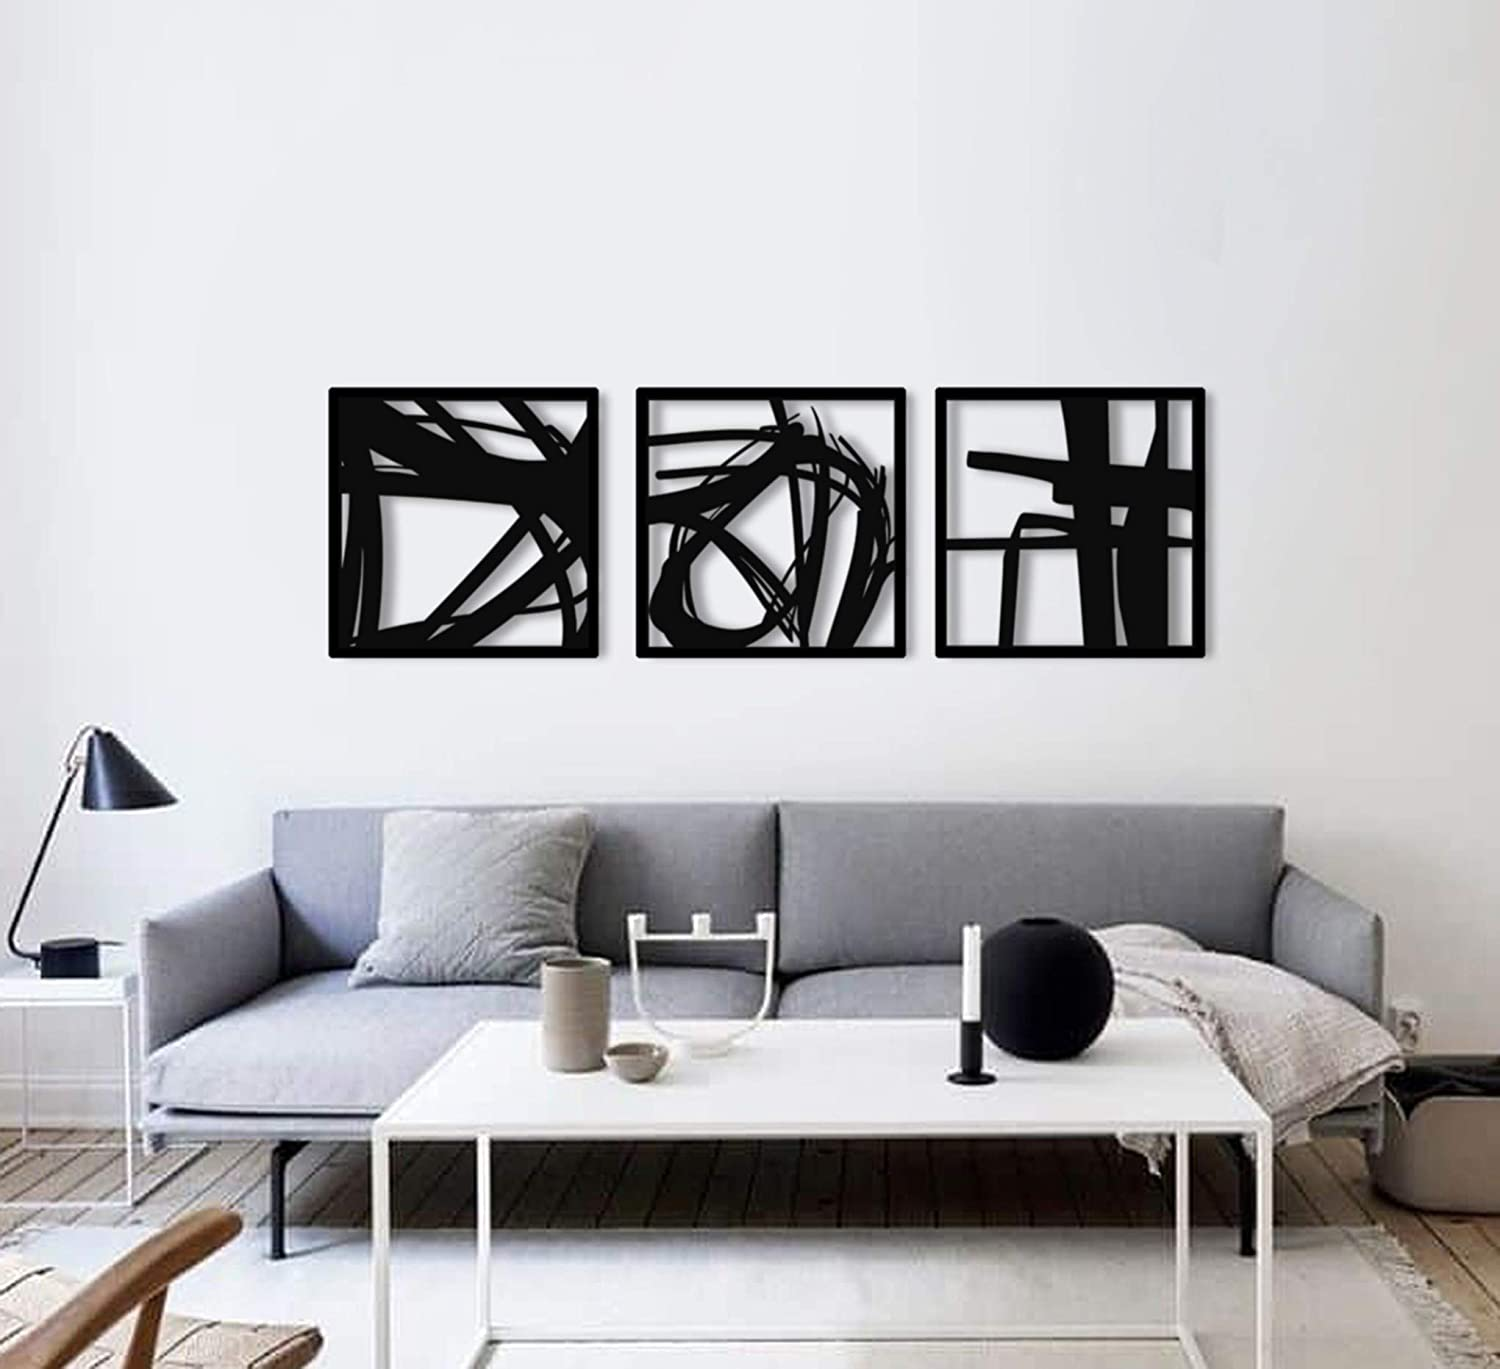 Hikate 1960 | 3 Individual Abstract Metal Wall Art - Home Décor Living Room Office Dining Aluminum Modern Design Sculpture Ready to Hang for Outdoors and Indoors (20